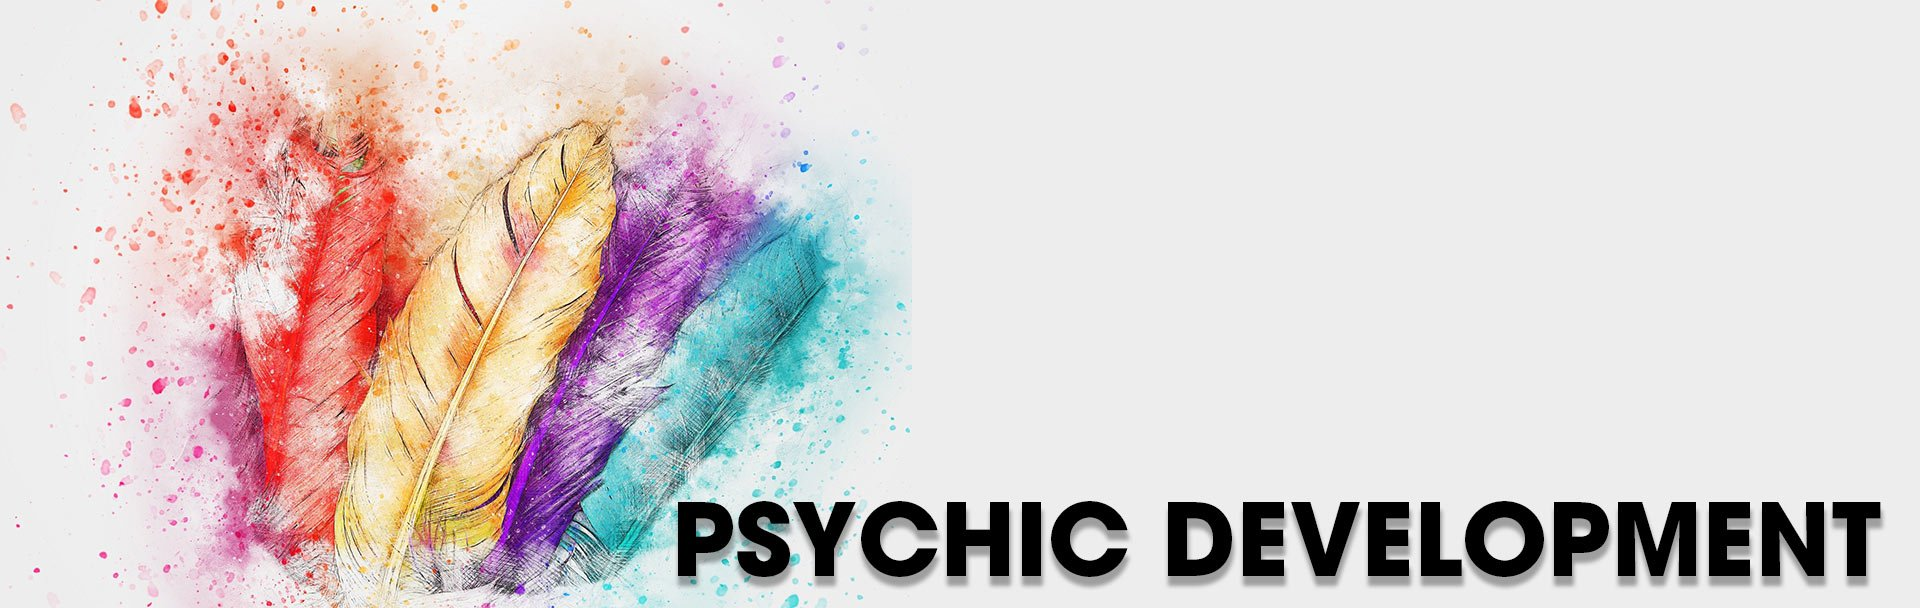 Beginners Psychic Development Class at the Sir Arthur Conan Doyle Centre